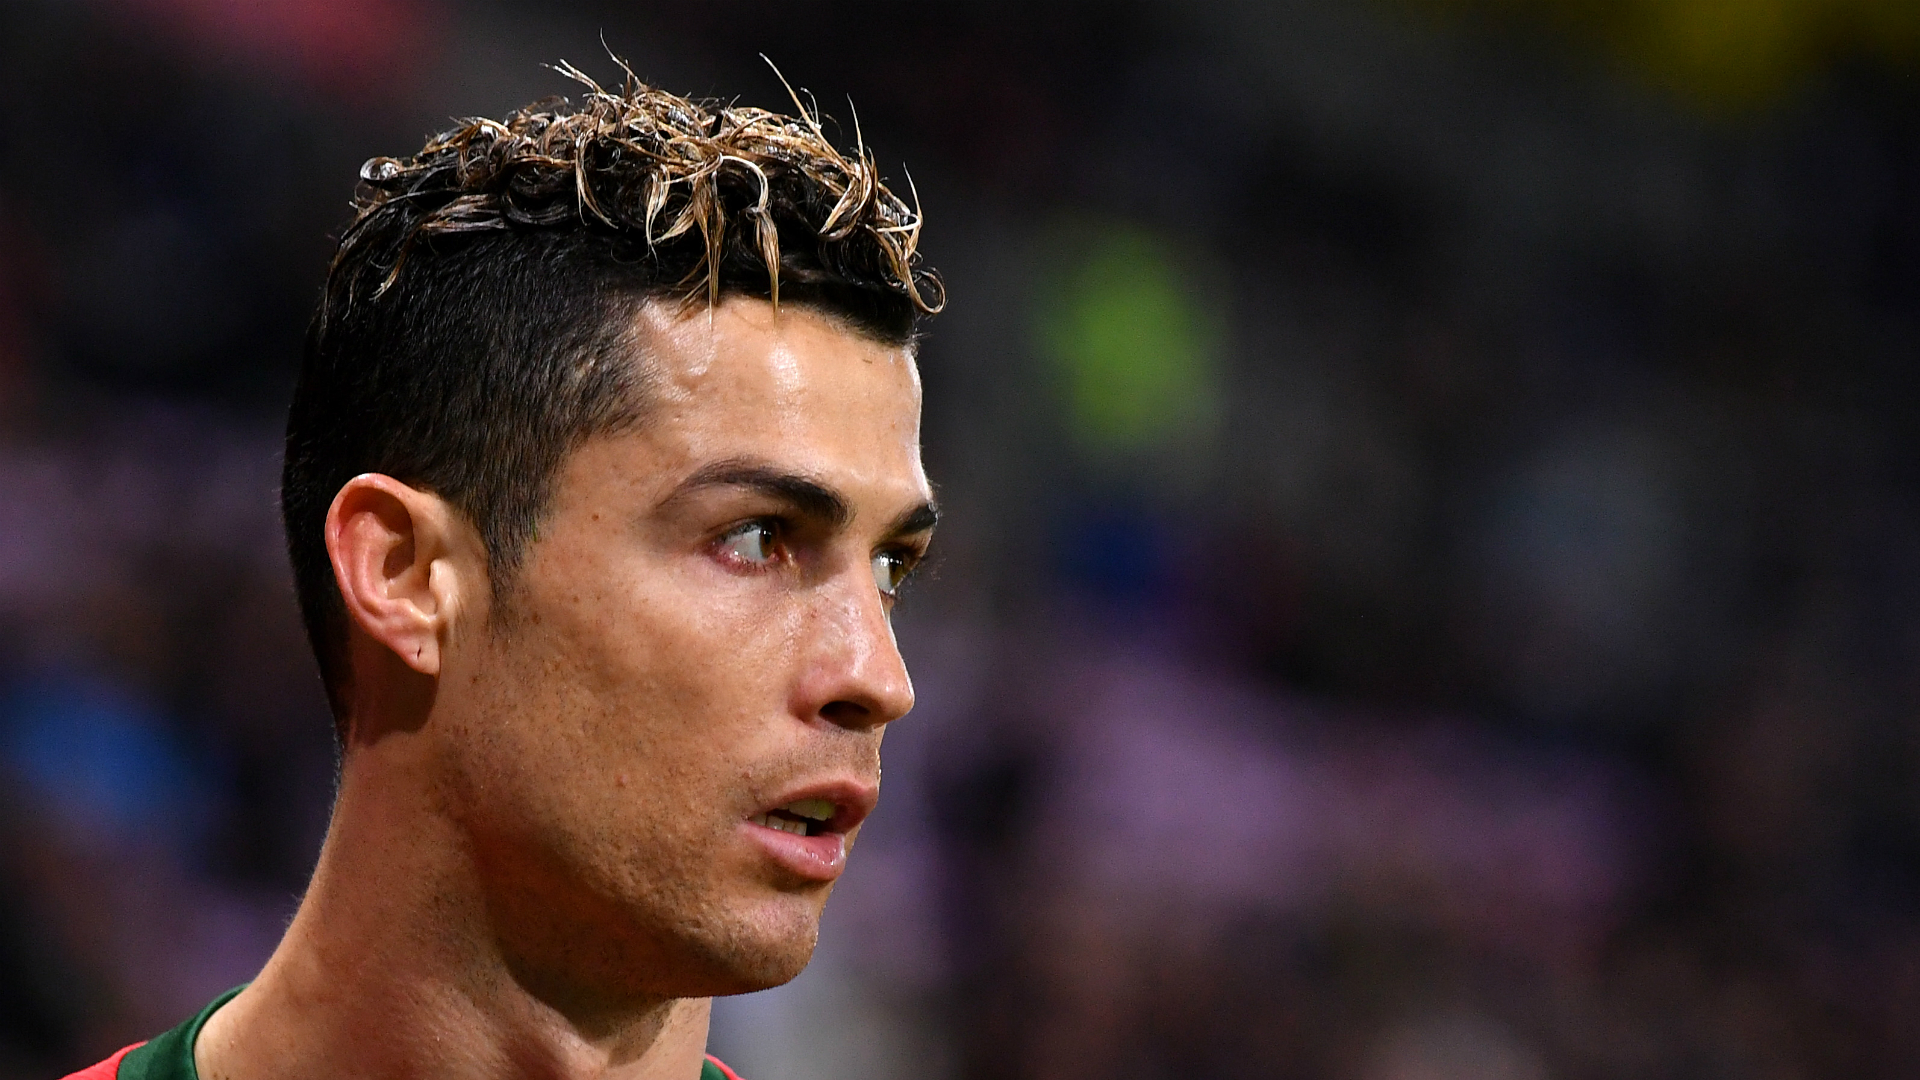 ronaldo is an assassin - buffon hails real madrid star ahead of